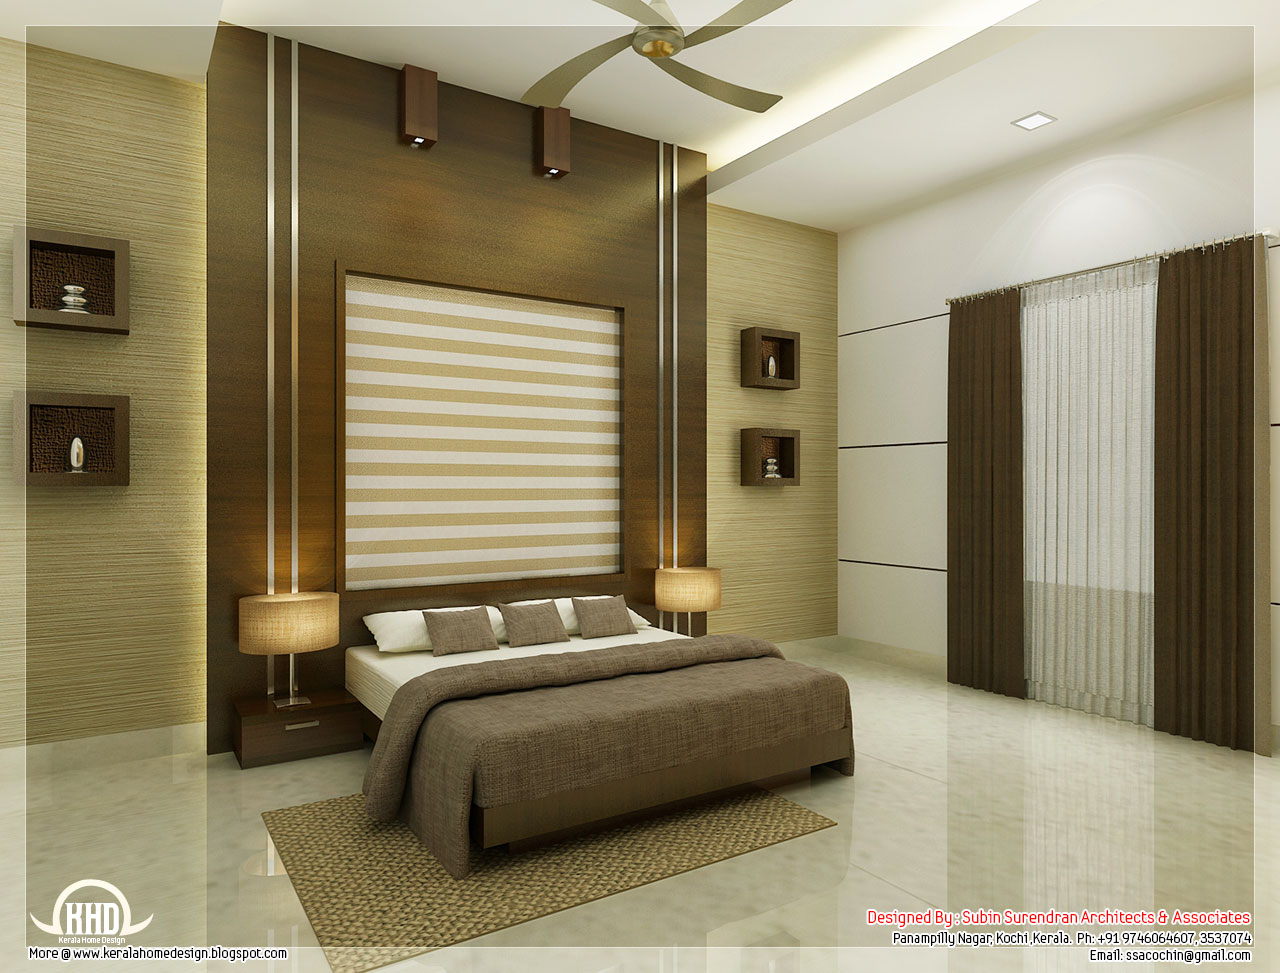 Beautiful bedroom interior designs kerala home design for Interior design images for bedrooms